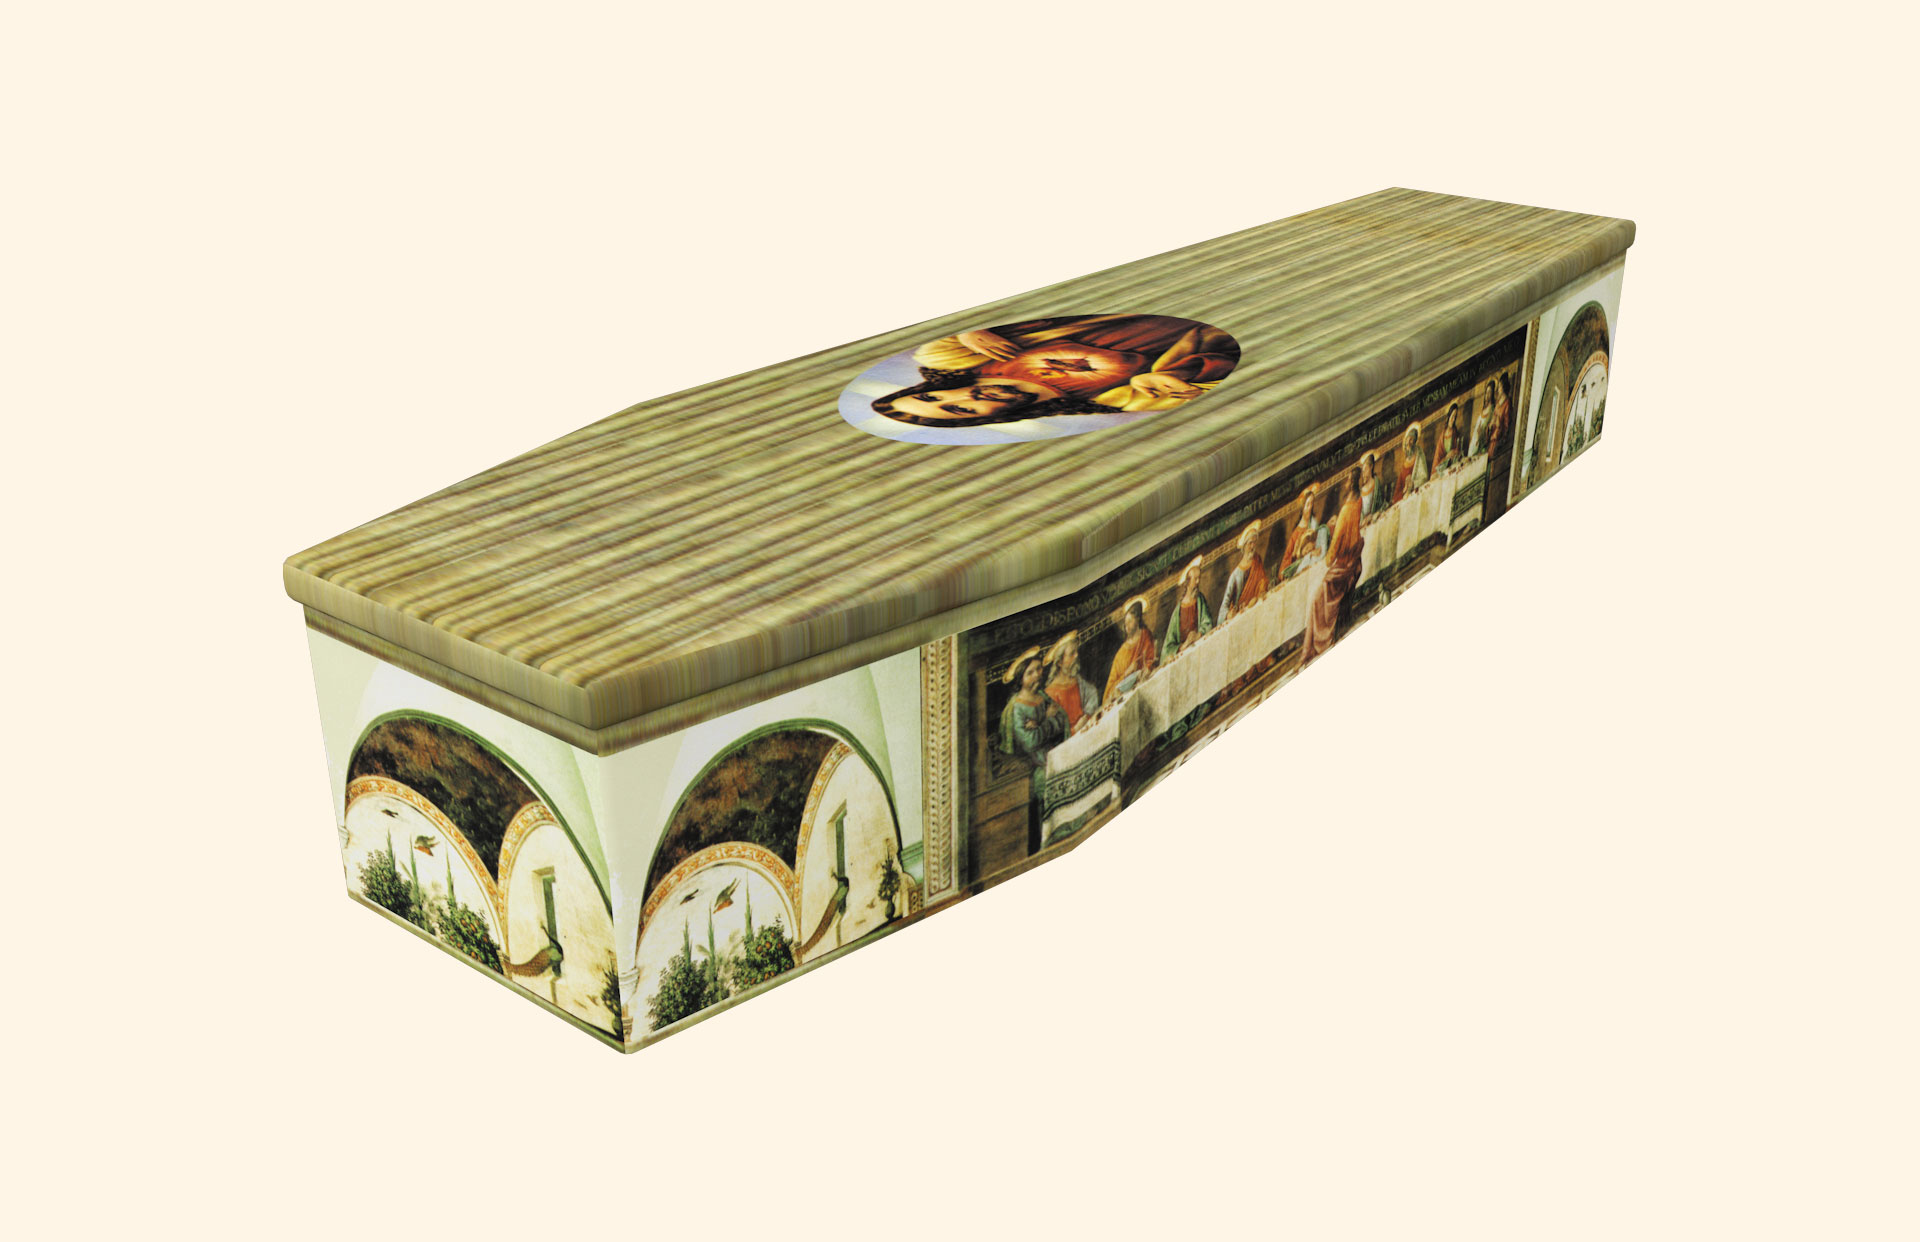 Last Supper Cardboard coffin